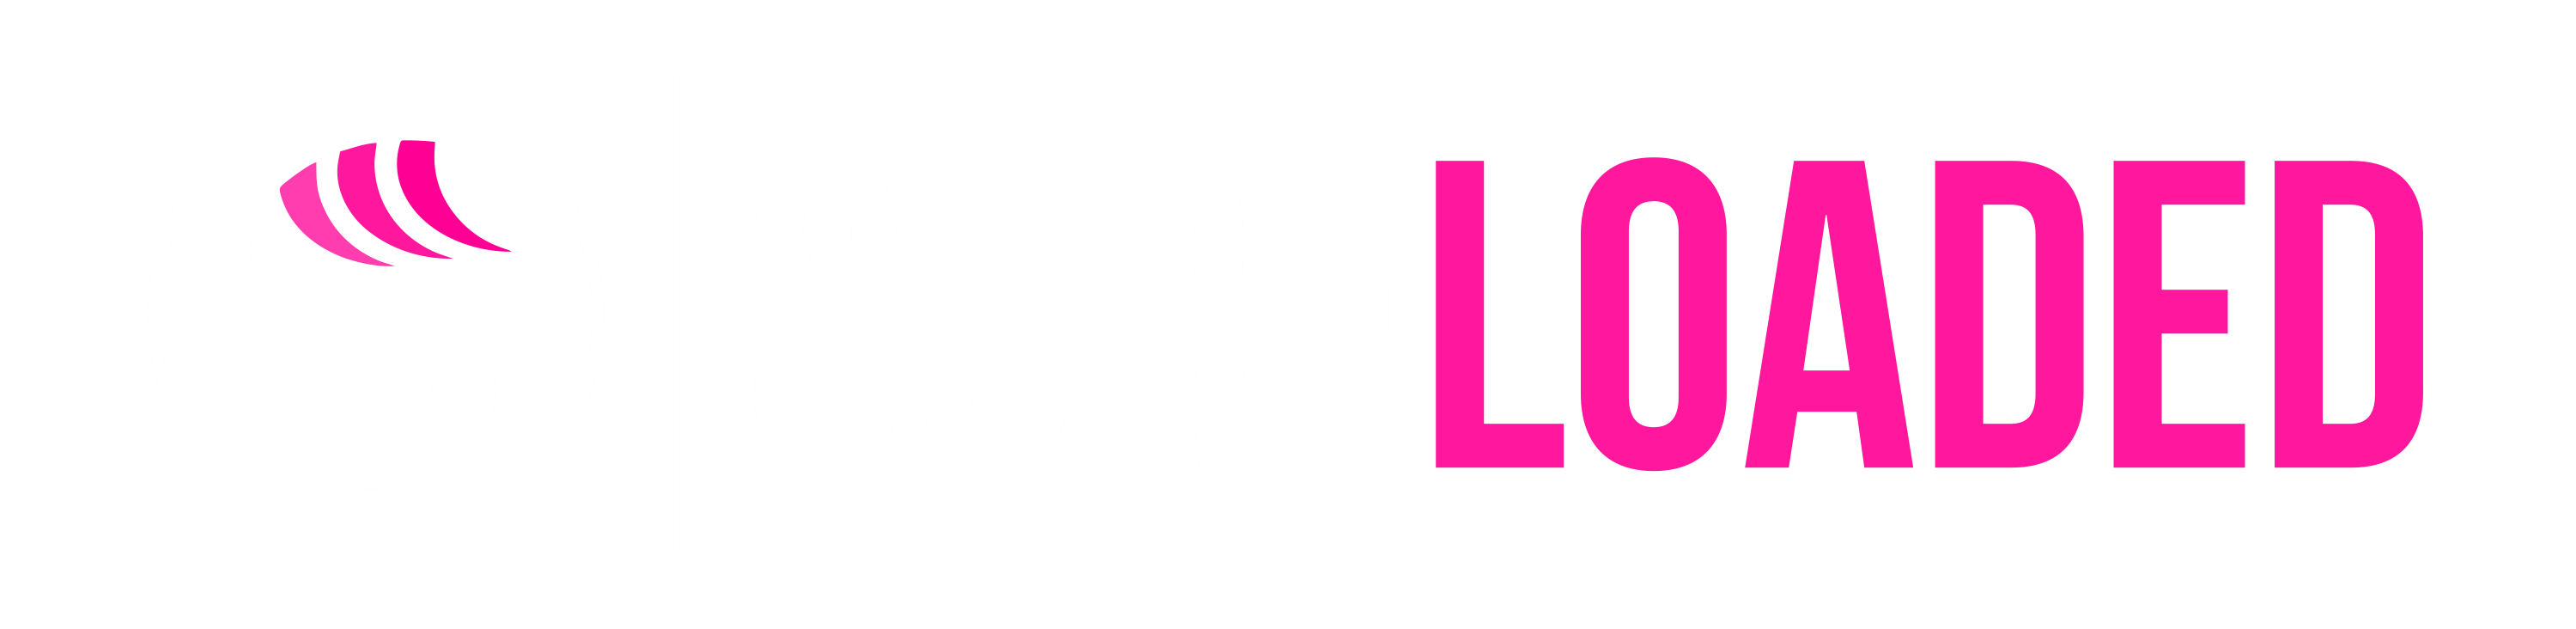 SureLoaded MOBILE LOGO